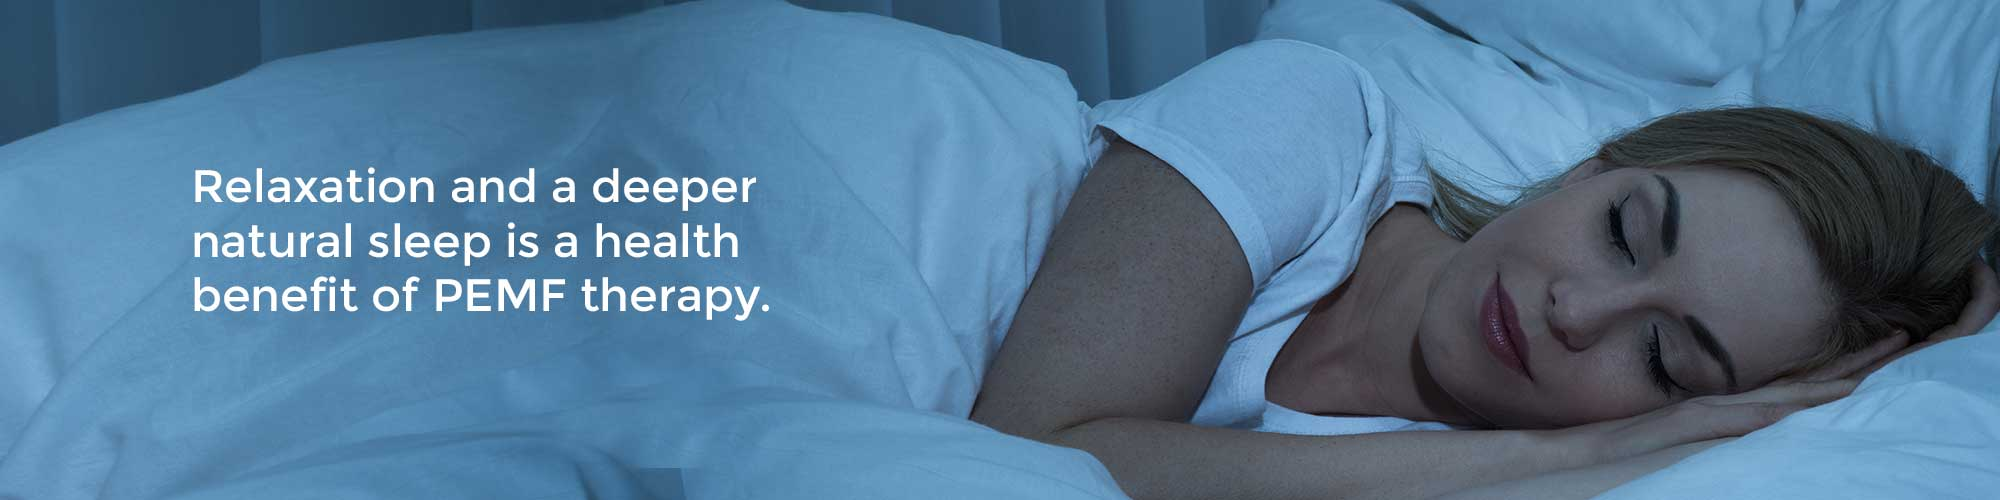 Relaxation and a deeper natural sleep is a health benefit of PEMF therapy